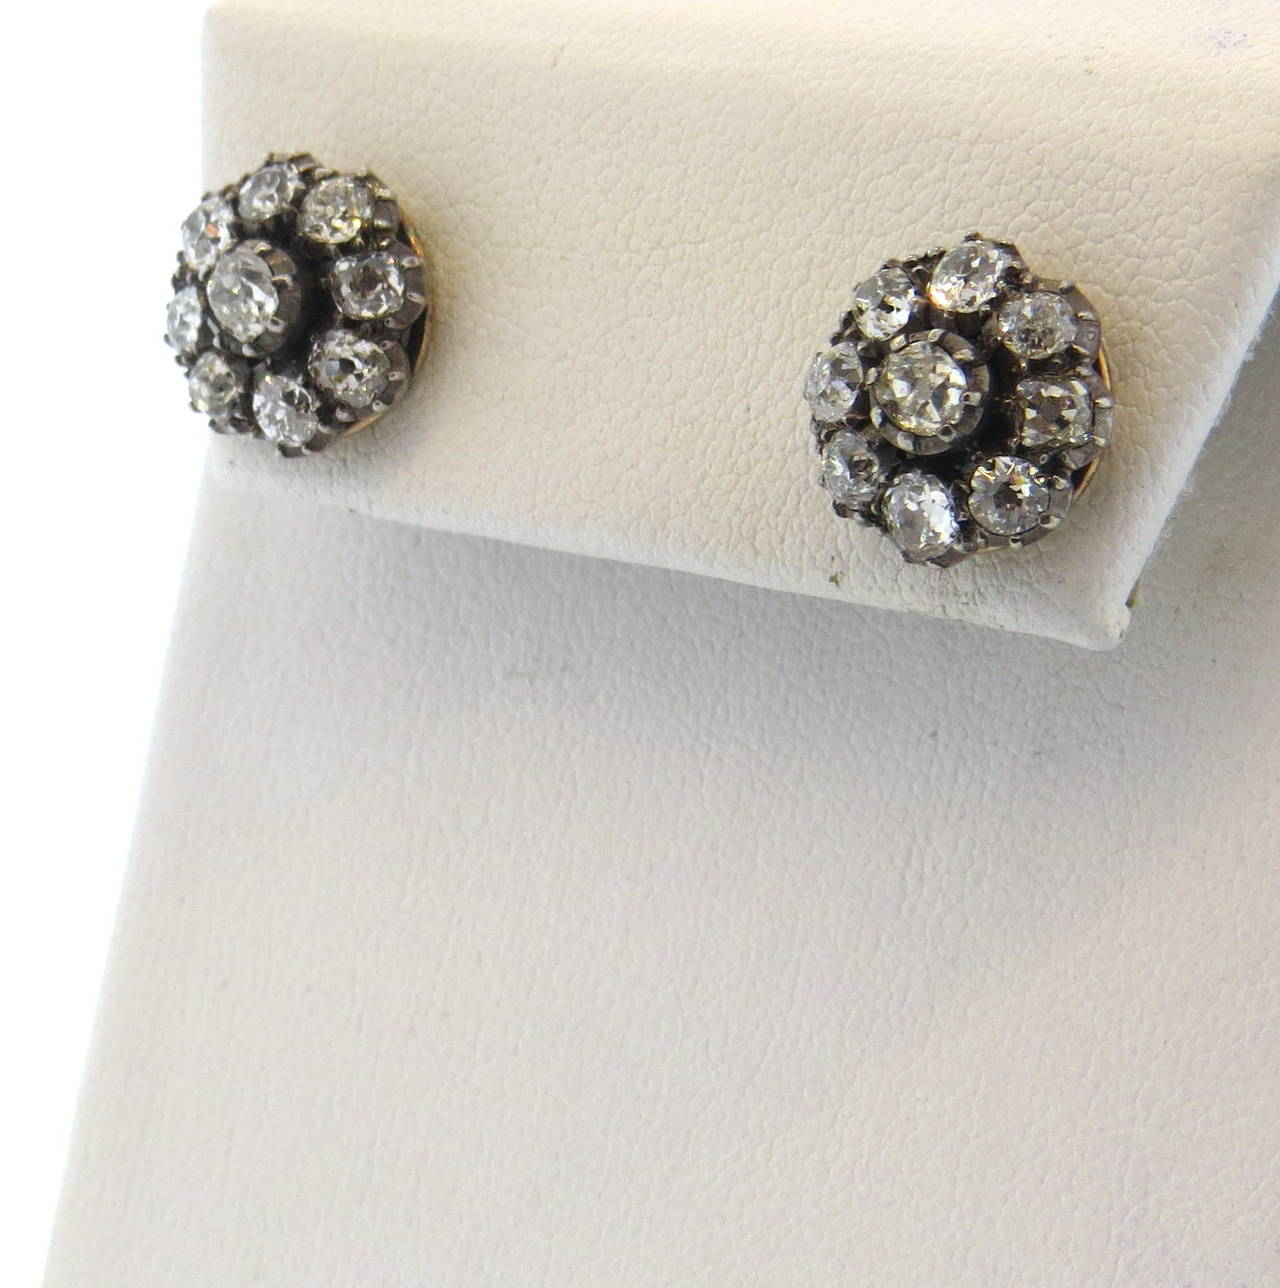 Antique Silver Top And Gold Stud Earrings Featuring Ercup Set Old Mine Cut Diamonds